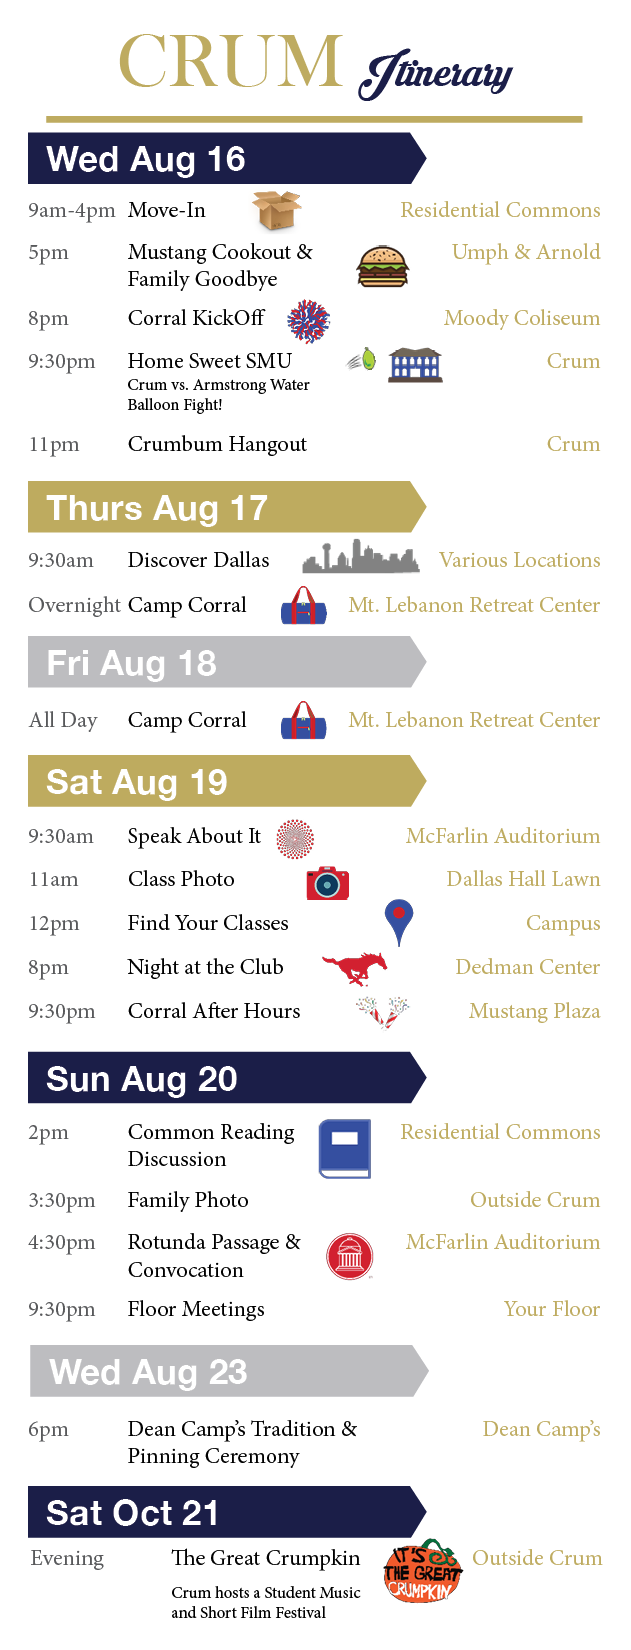 2017 Itinerary (click to expand)